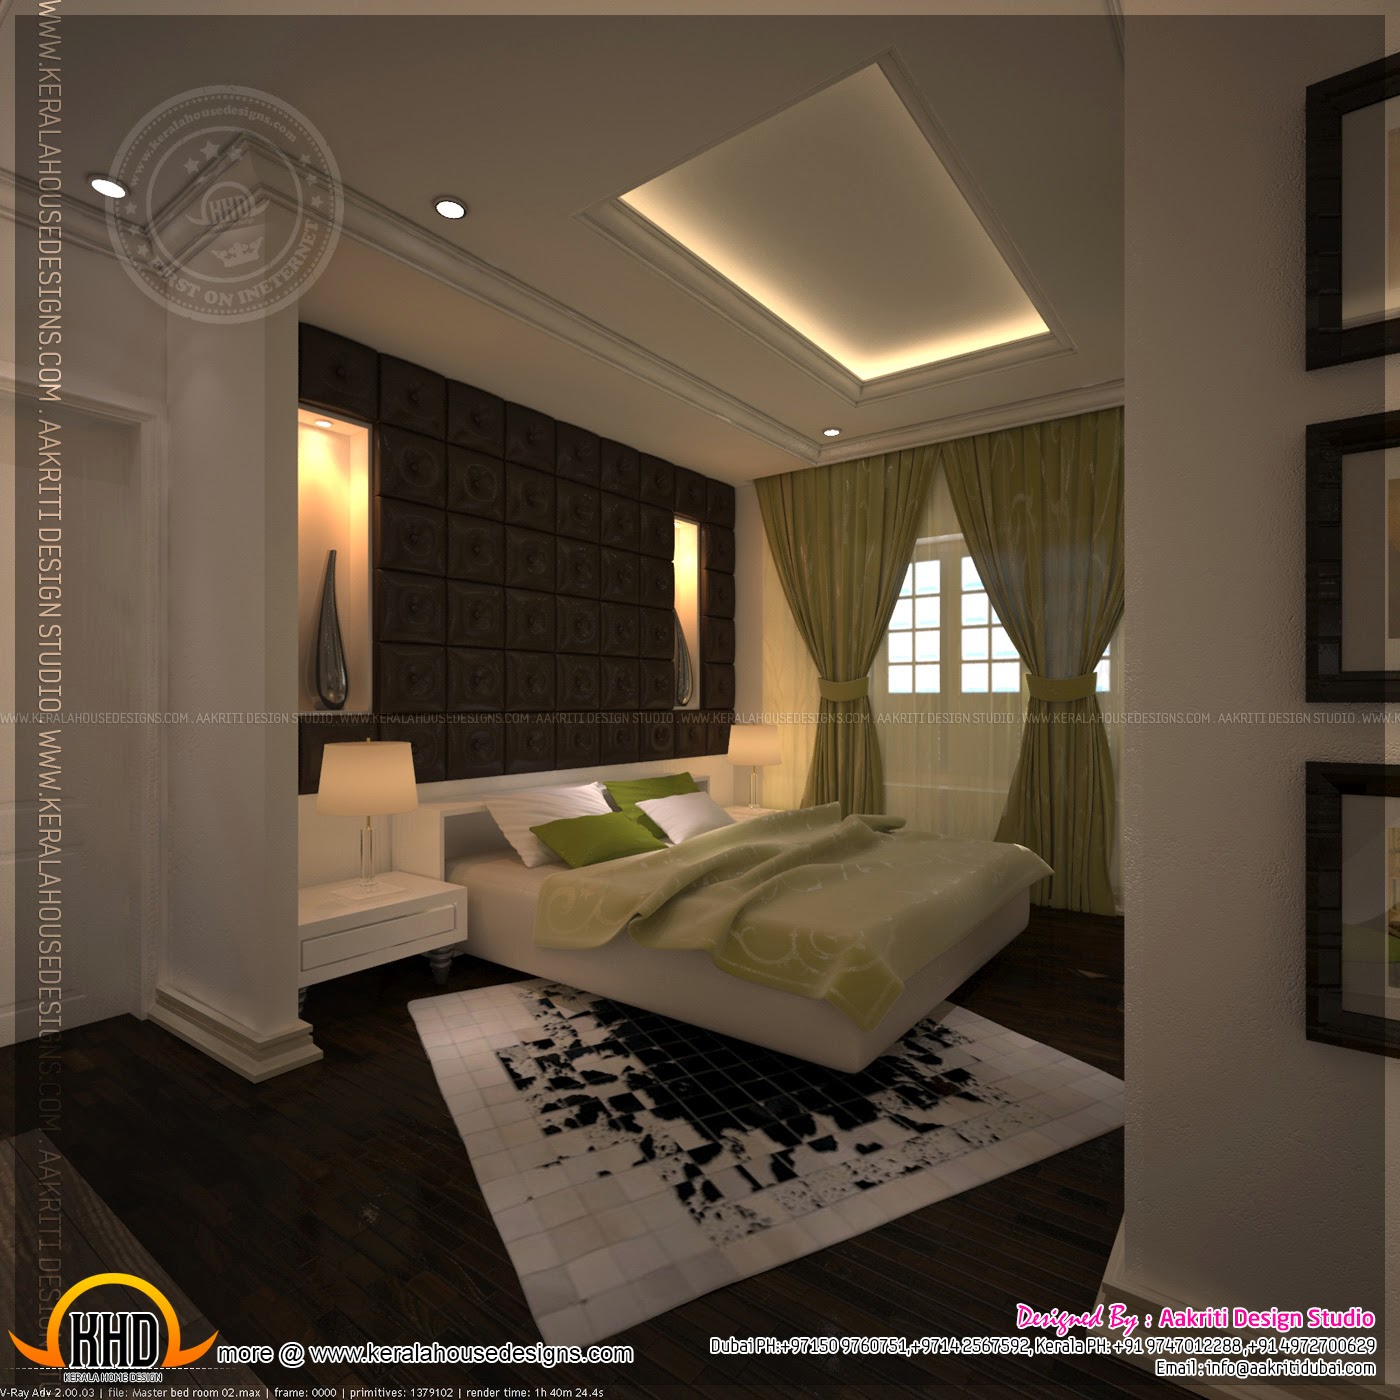 April 2015 home kerala plans Photos of bedrooms interior design